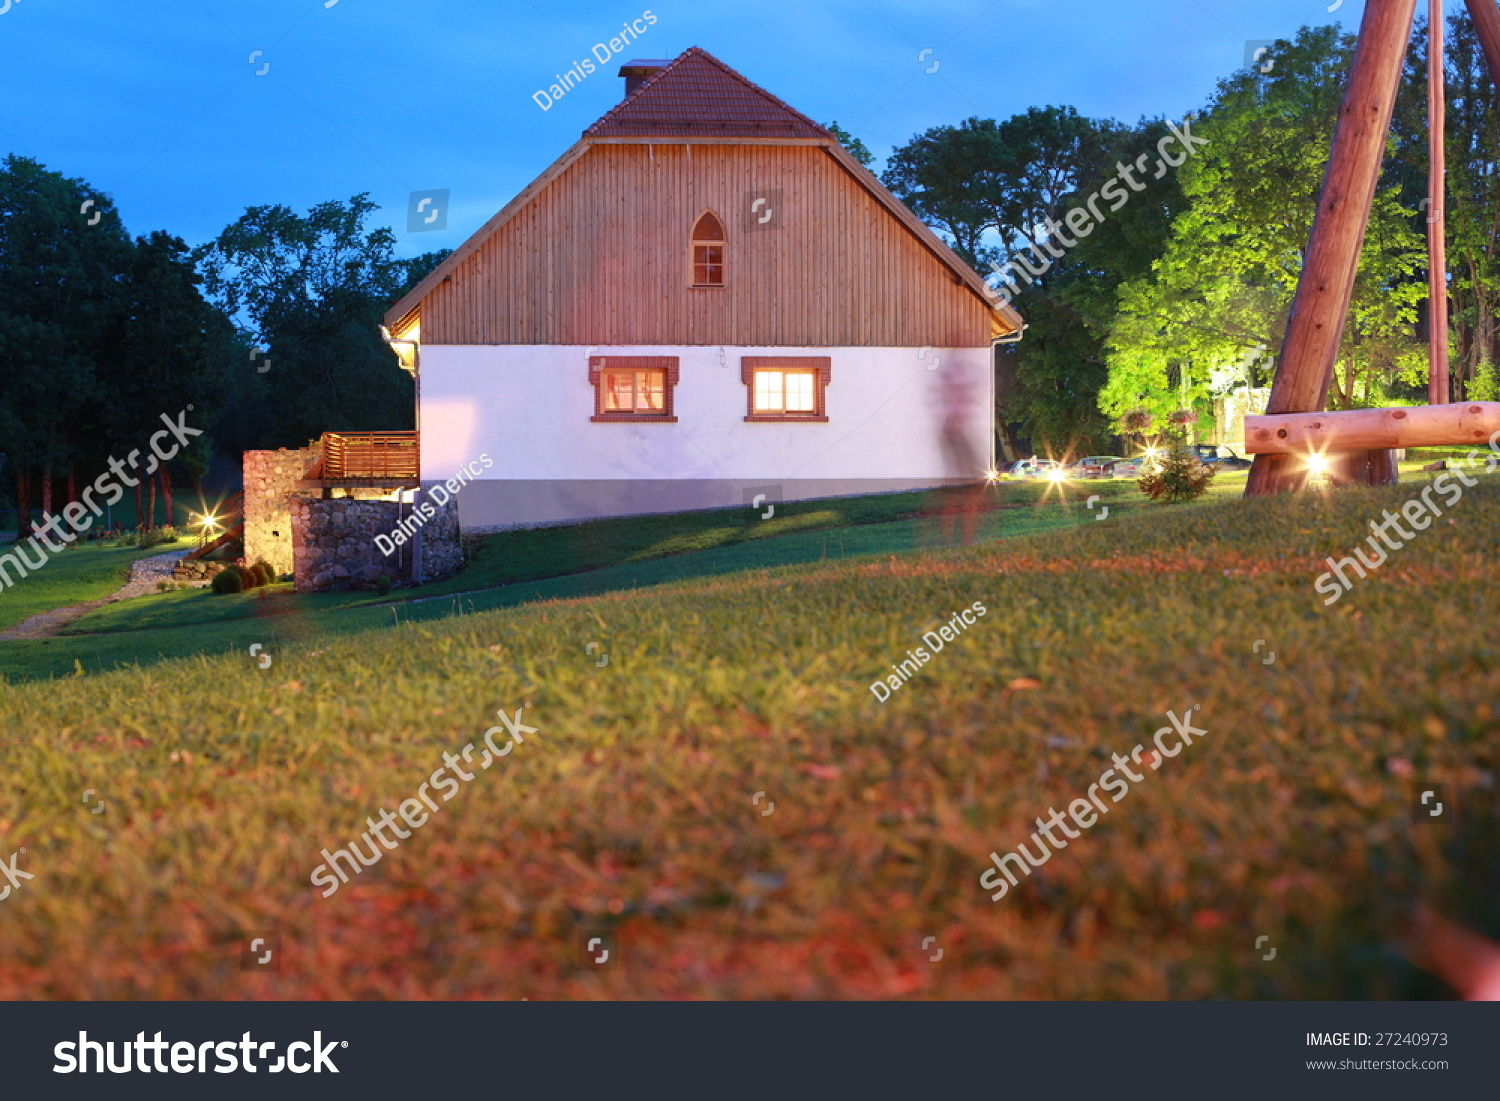 New country house for sale in twilight stock photo for Twilight house for sale